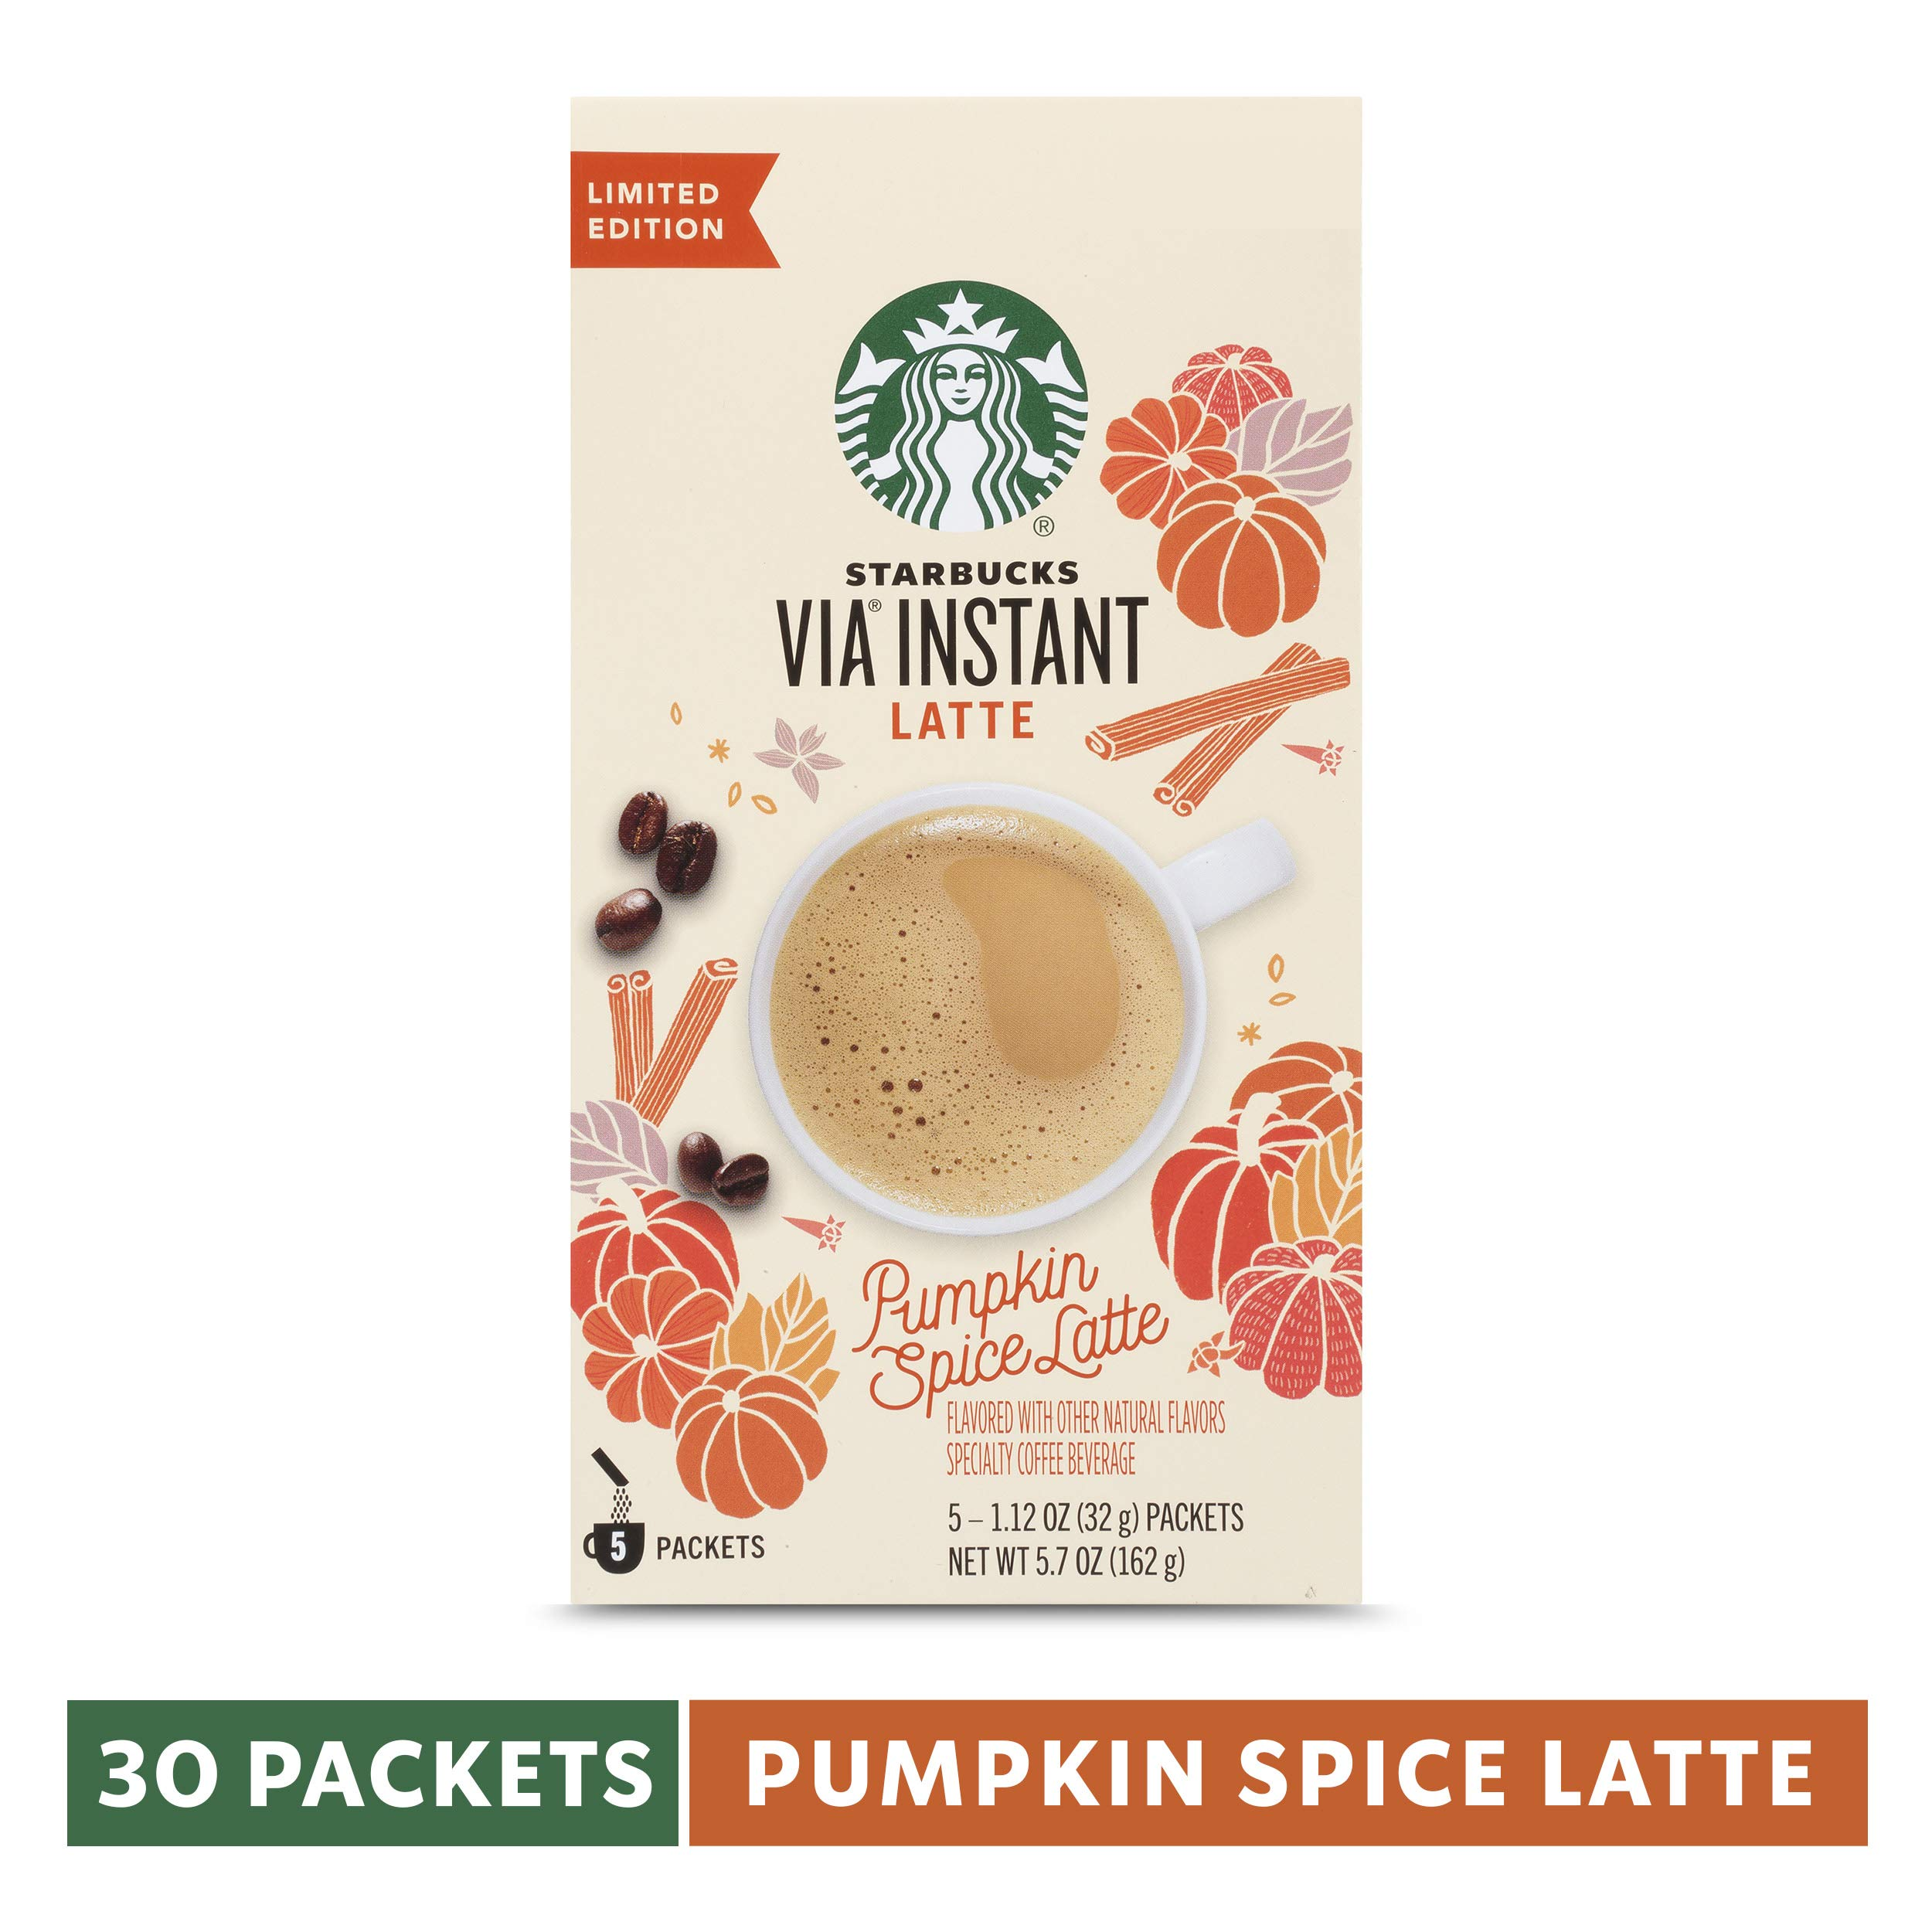 Starbucks VIA Instant Pumpkin Spice Latte, 6 Boxes of 5 (30 Total Packets) by Starbucks